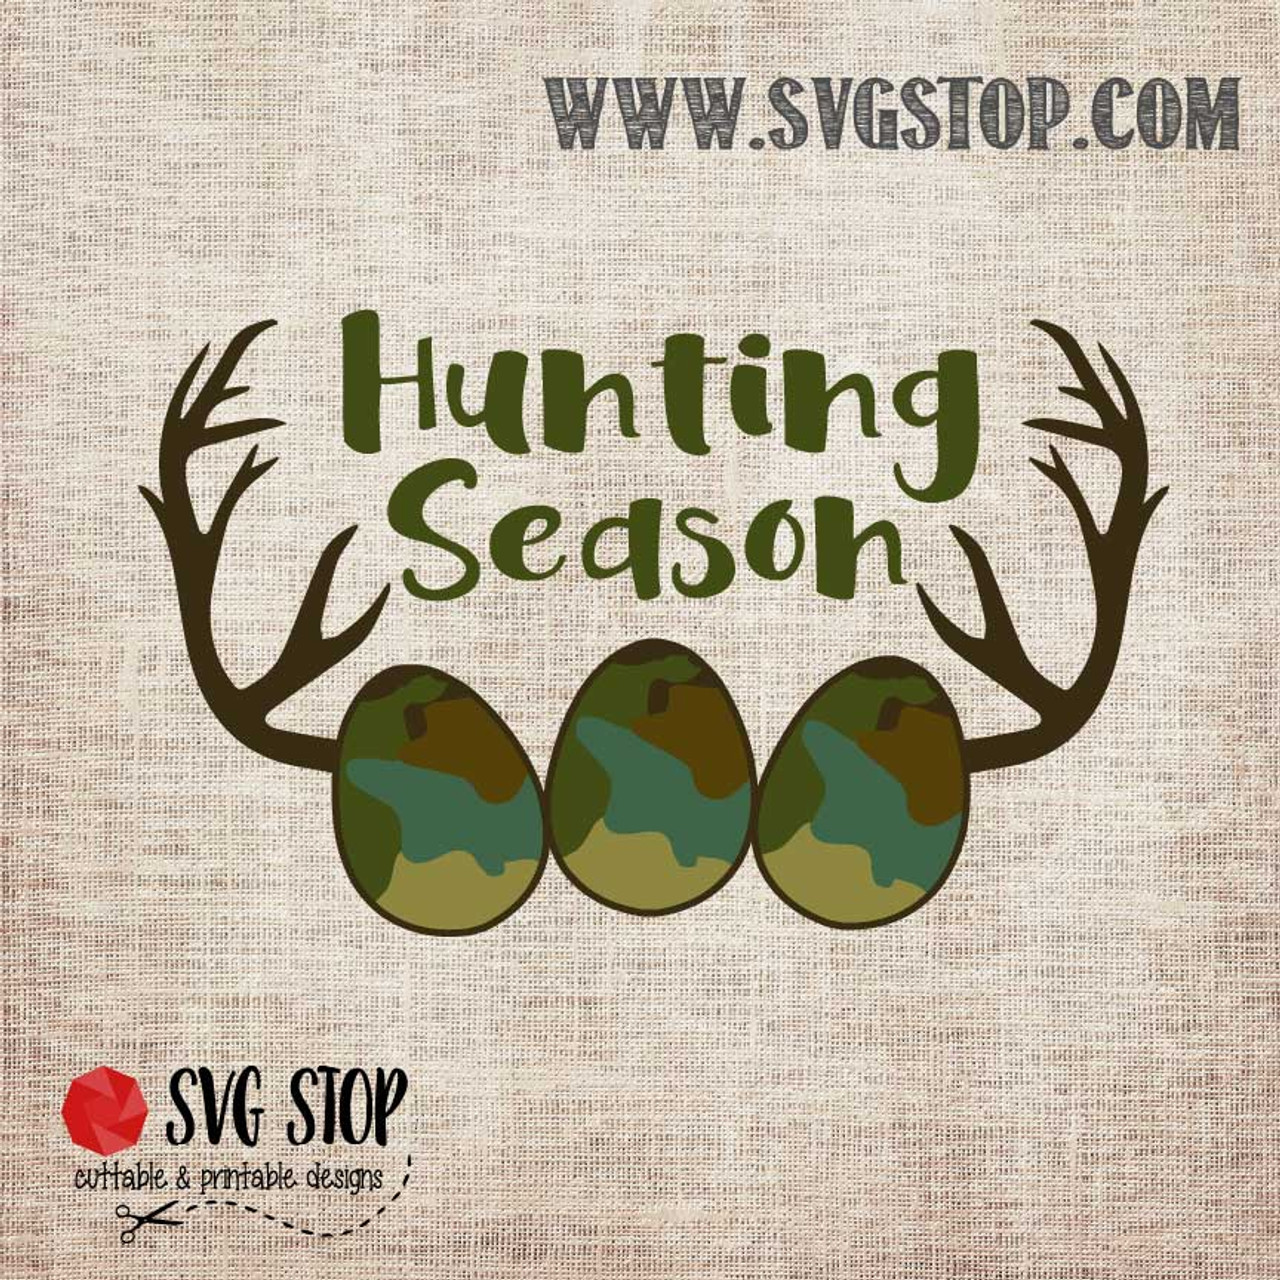 Easter Hunting Season Cut File The Svg Stop